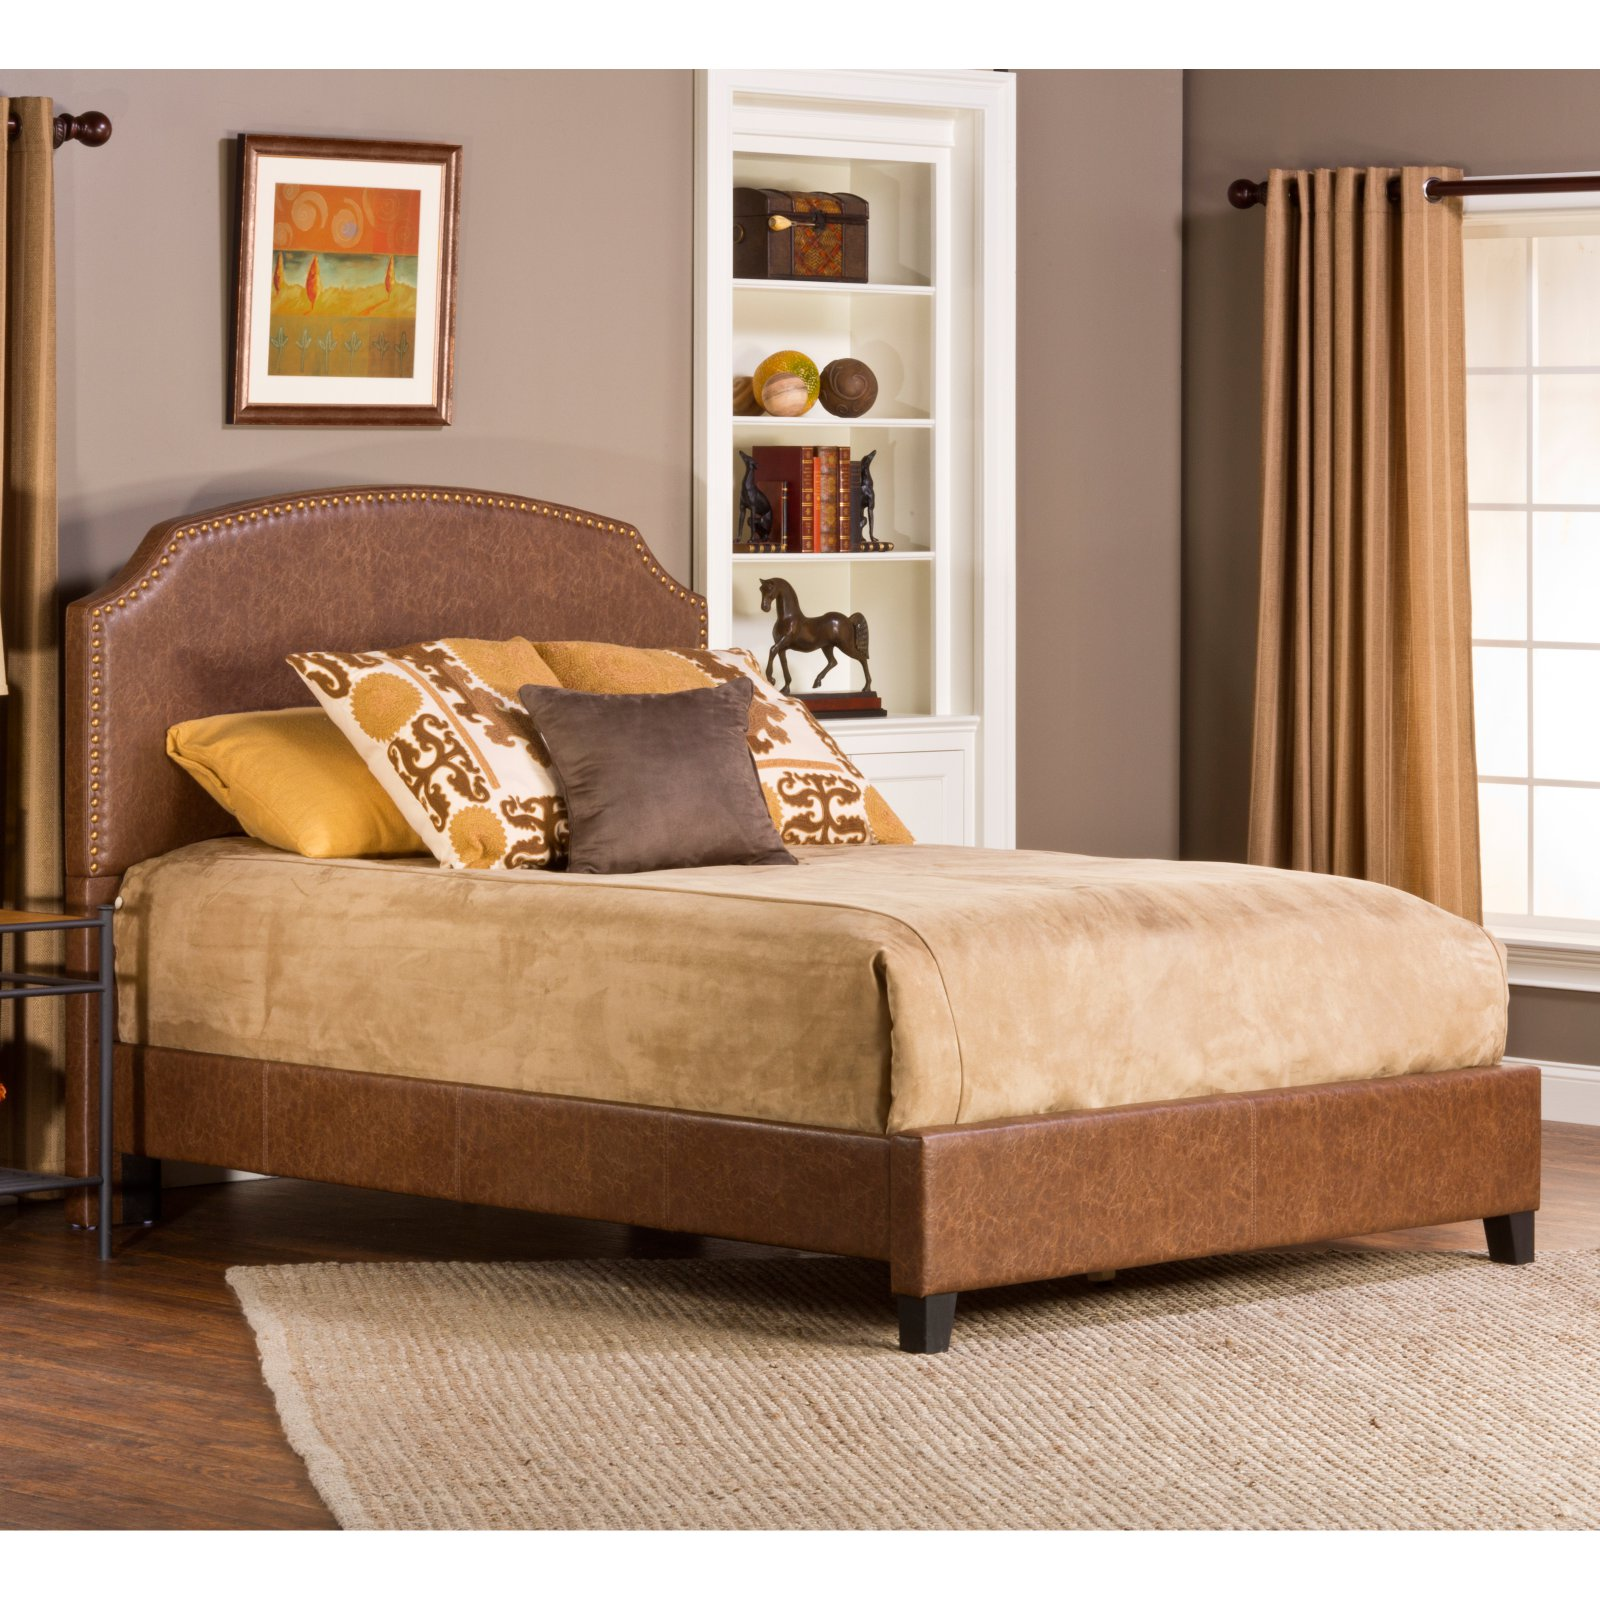 Best Hillsdale Durango Upholstered Low Profile Bed Size King 400 x 300